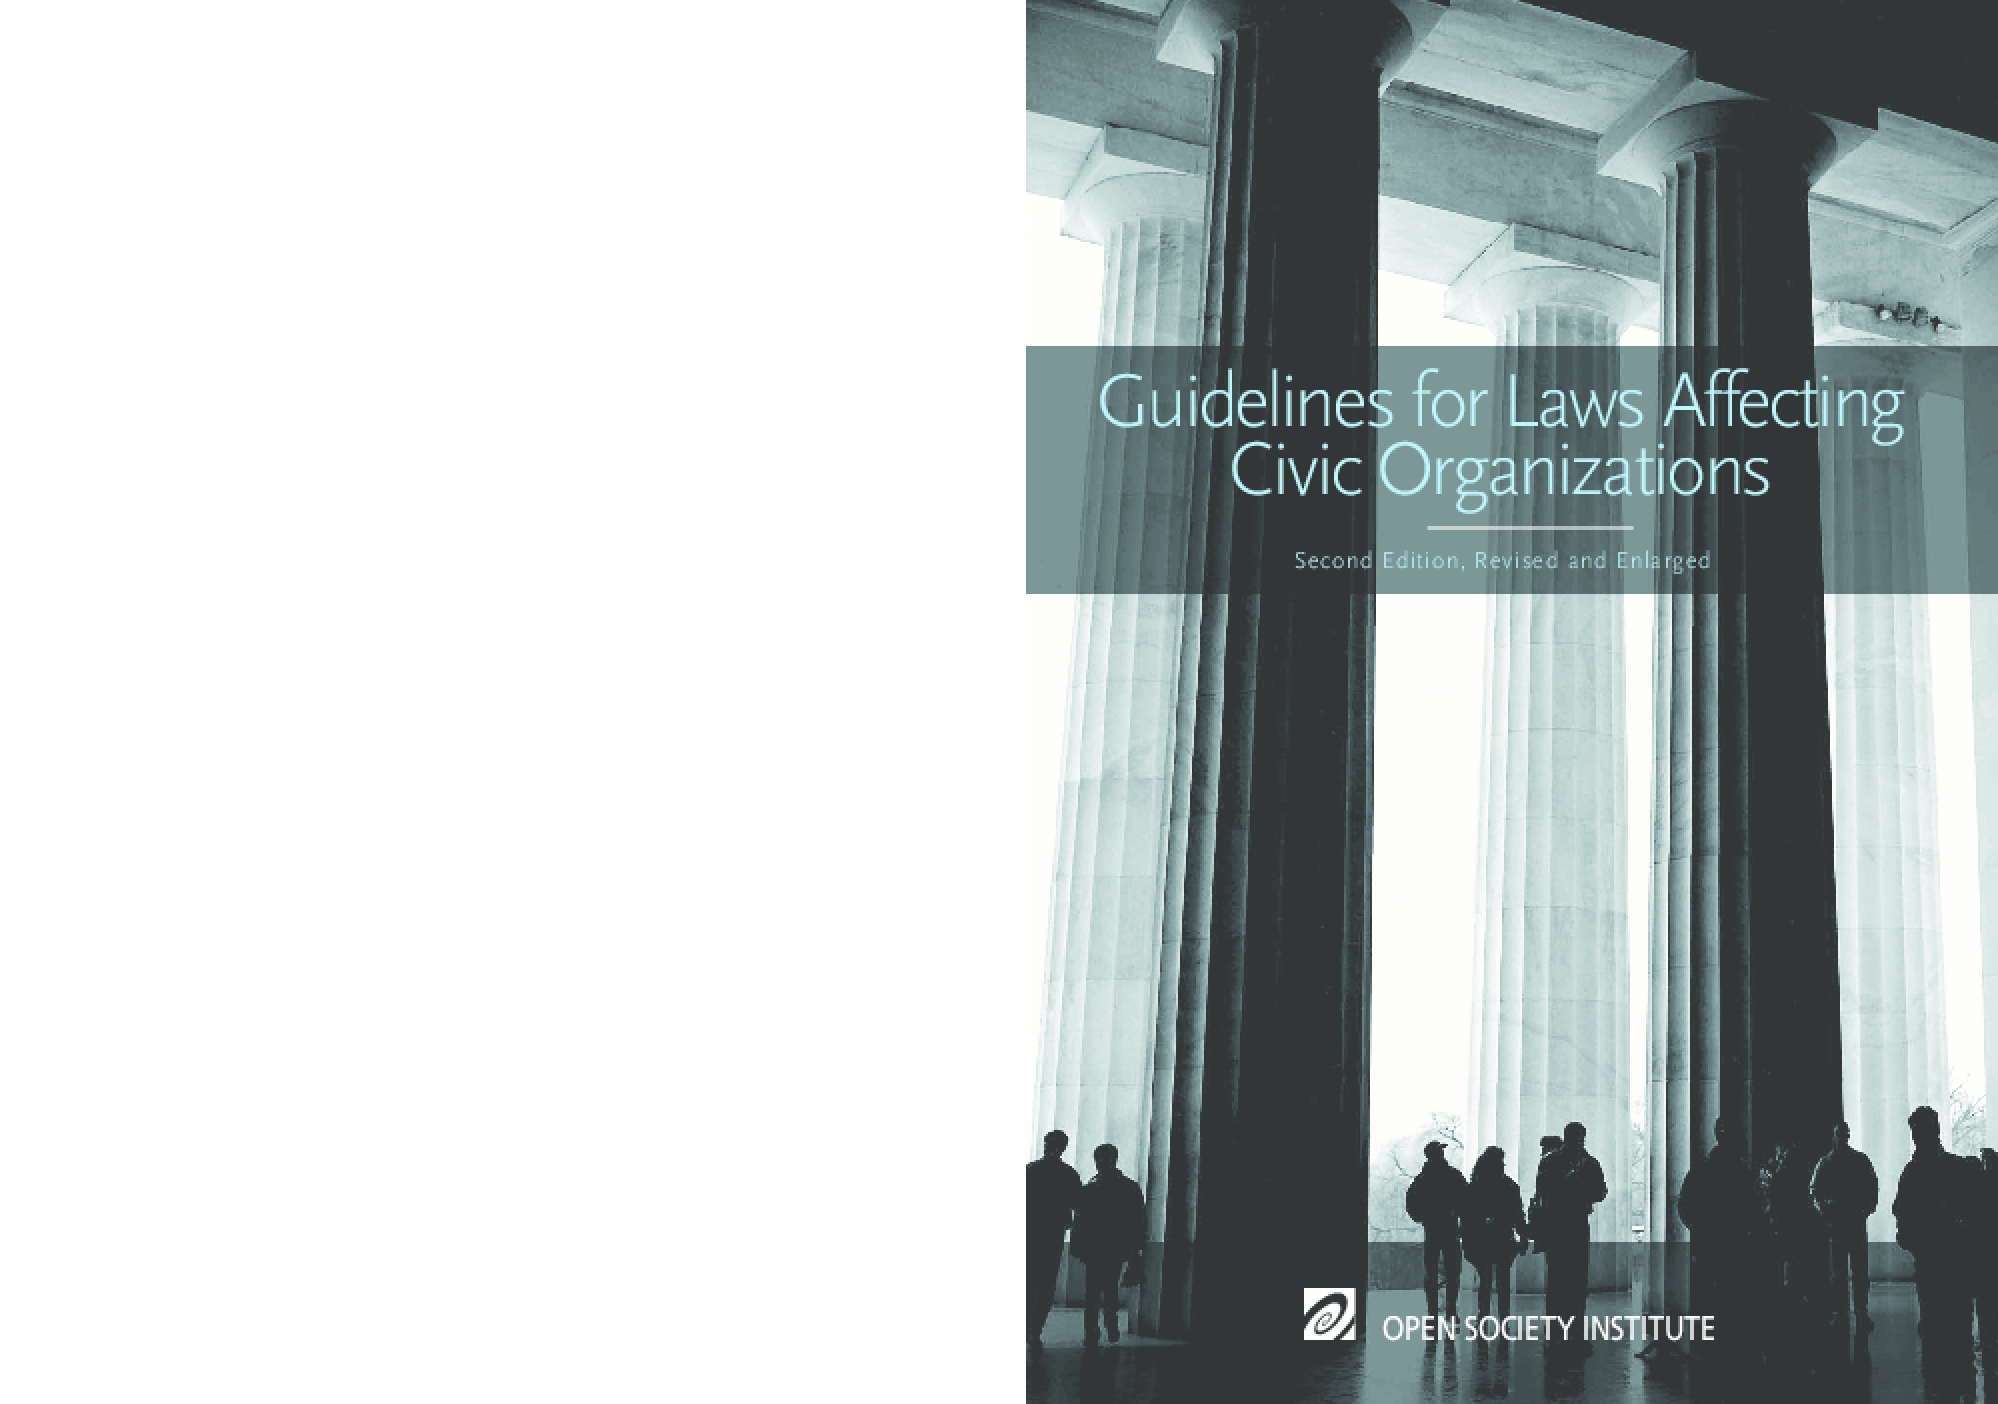 Guidelines for Laws Affecting Civic Organizations: Prepared for the Open Society Institute in cooperation with the International Center for Not-for-Profit Law